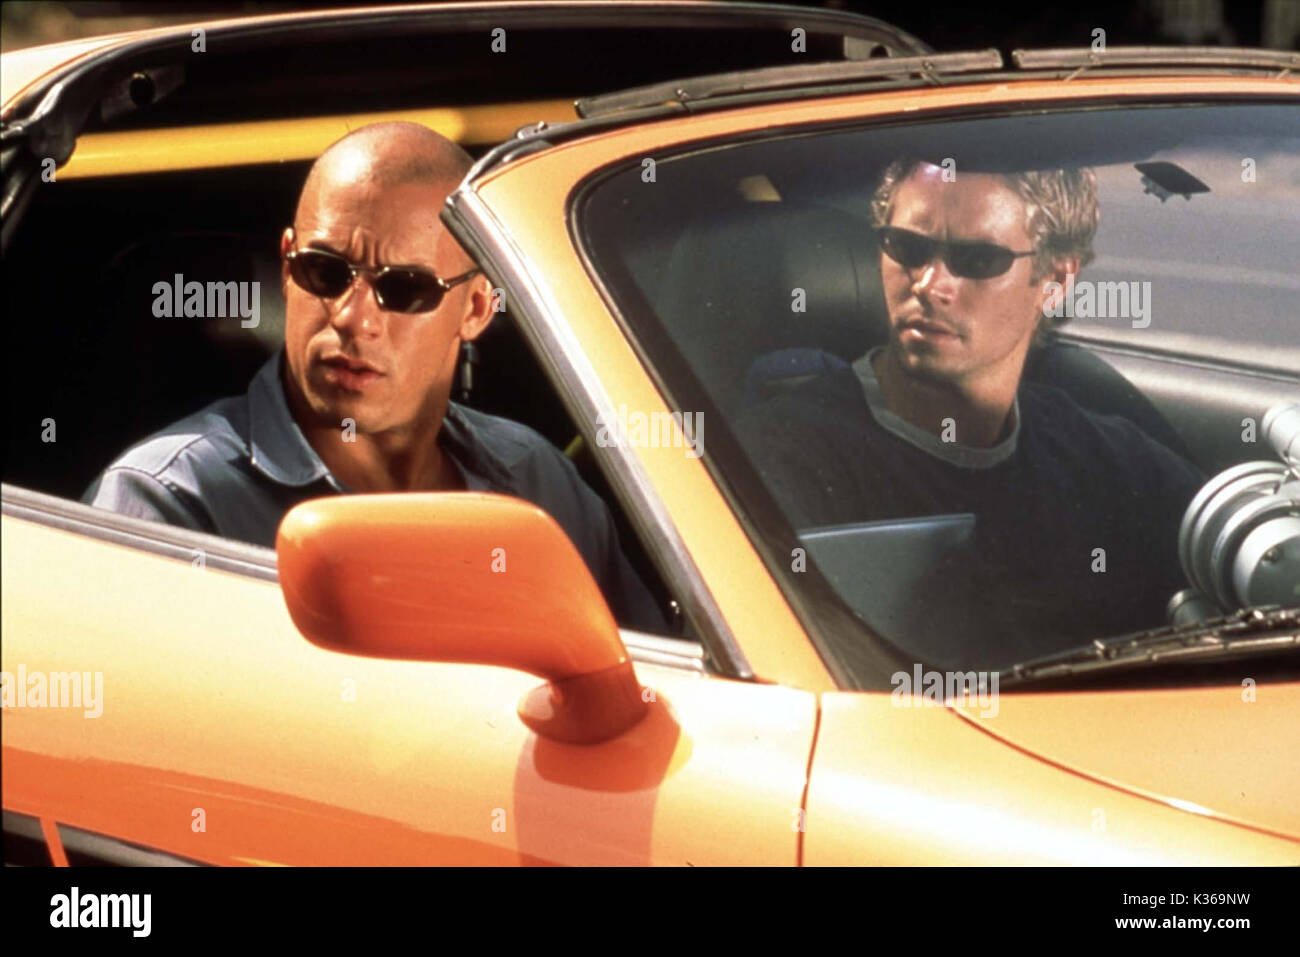 THE FAST AND THE FURIOUS VIN DIESEL, PAUL WALKER     Date: 2001 - Stock Image